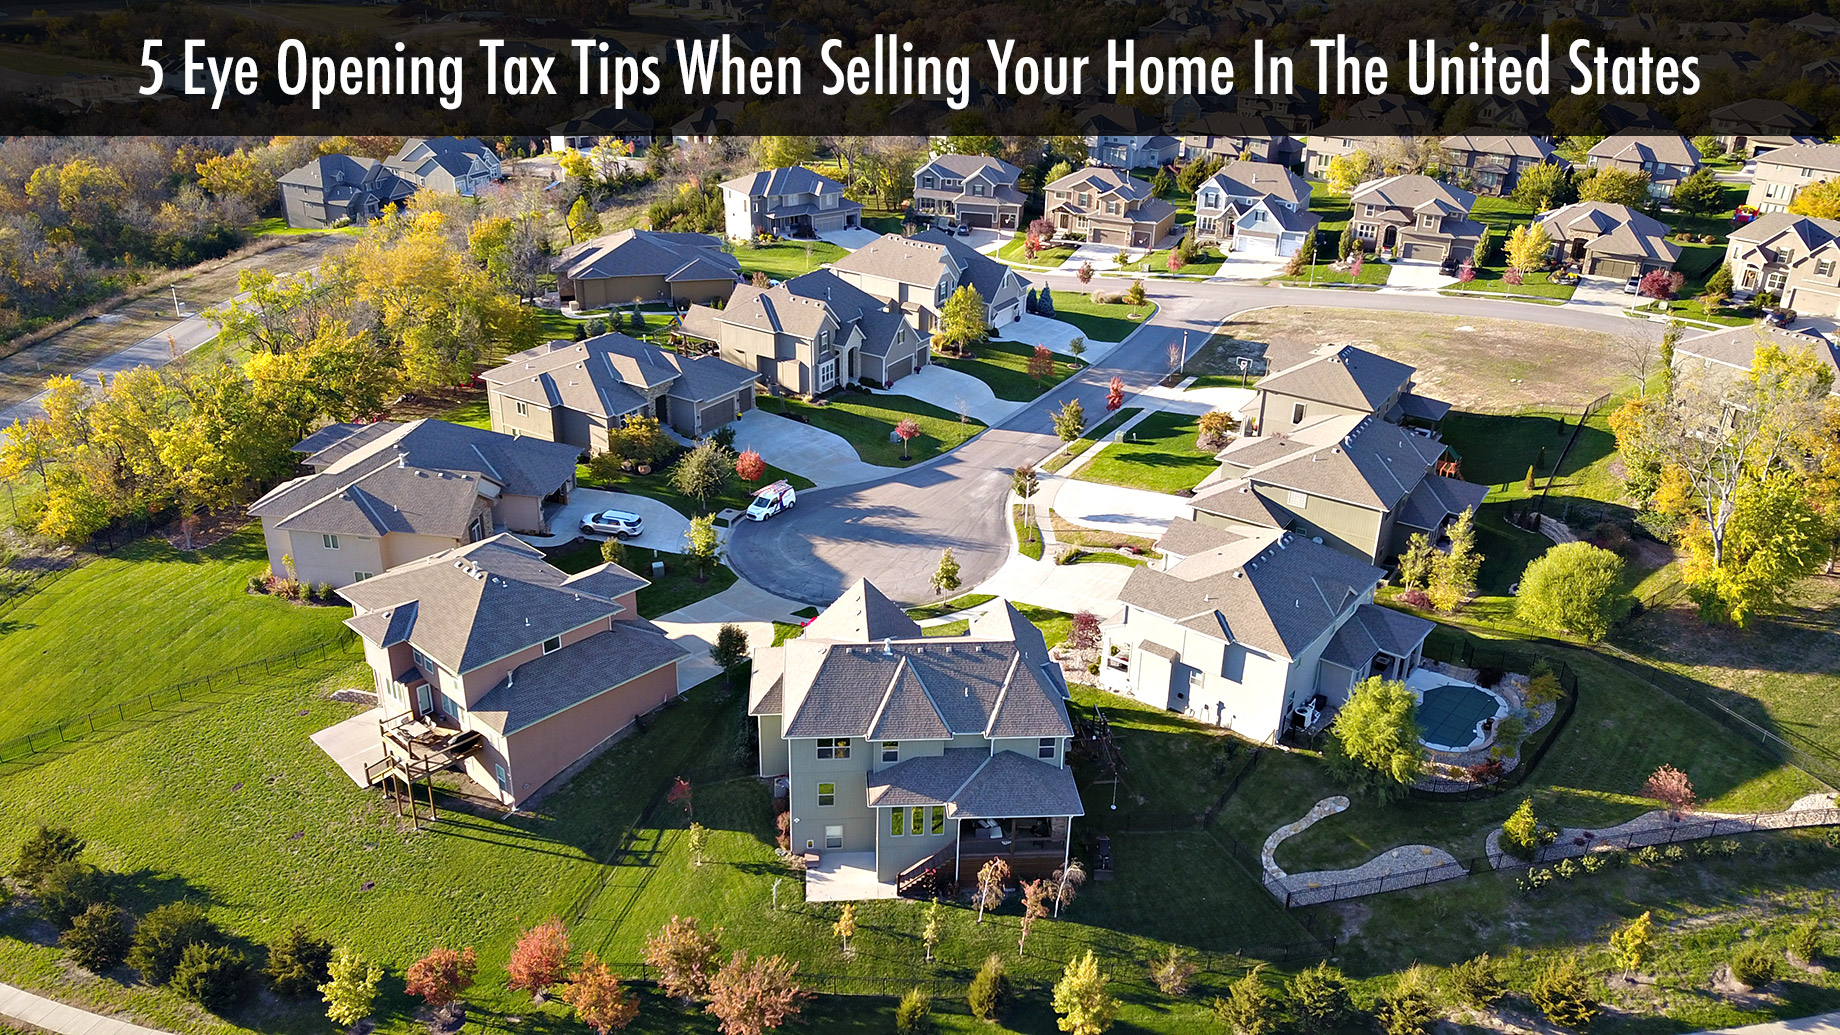 5 Eye Opening Tax Tips When Selling Your Home In The United States